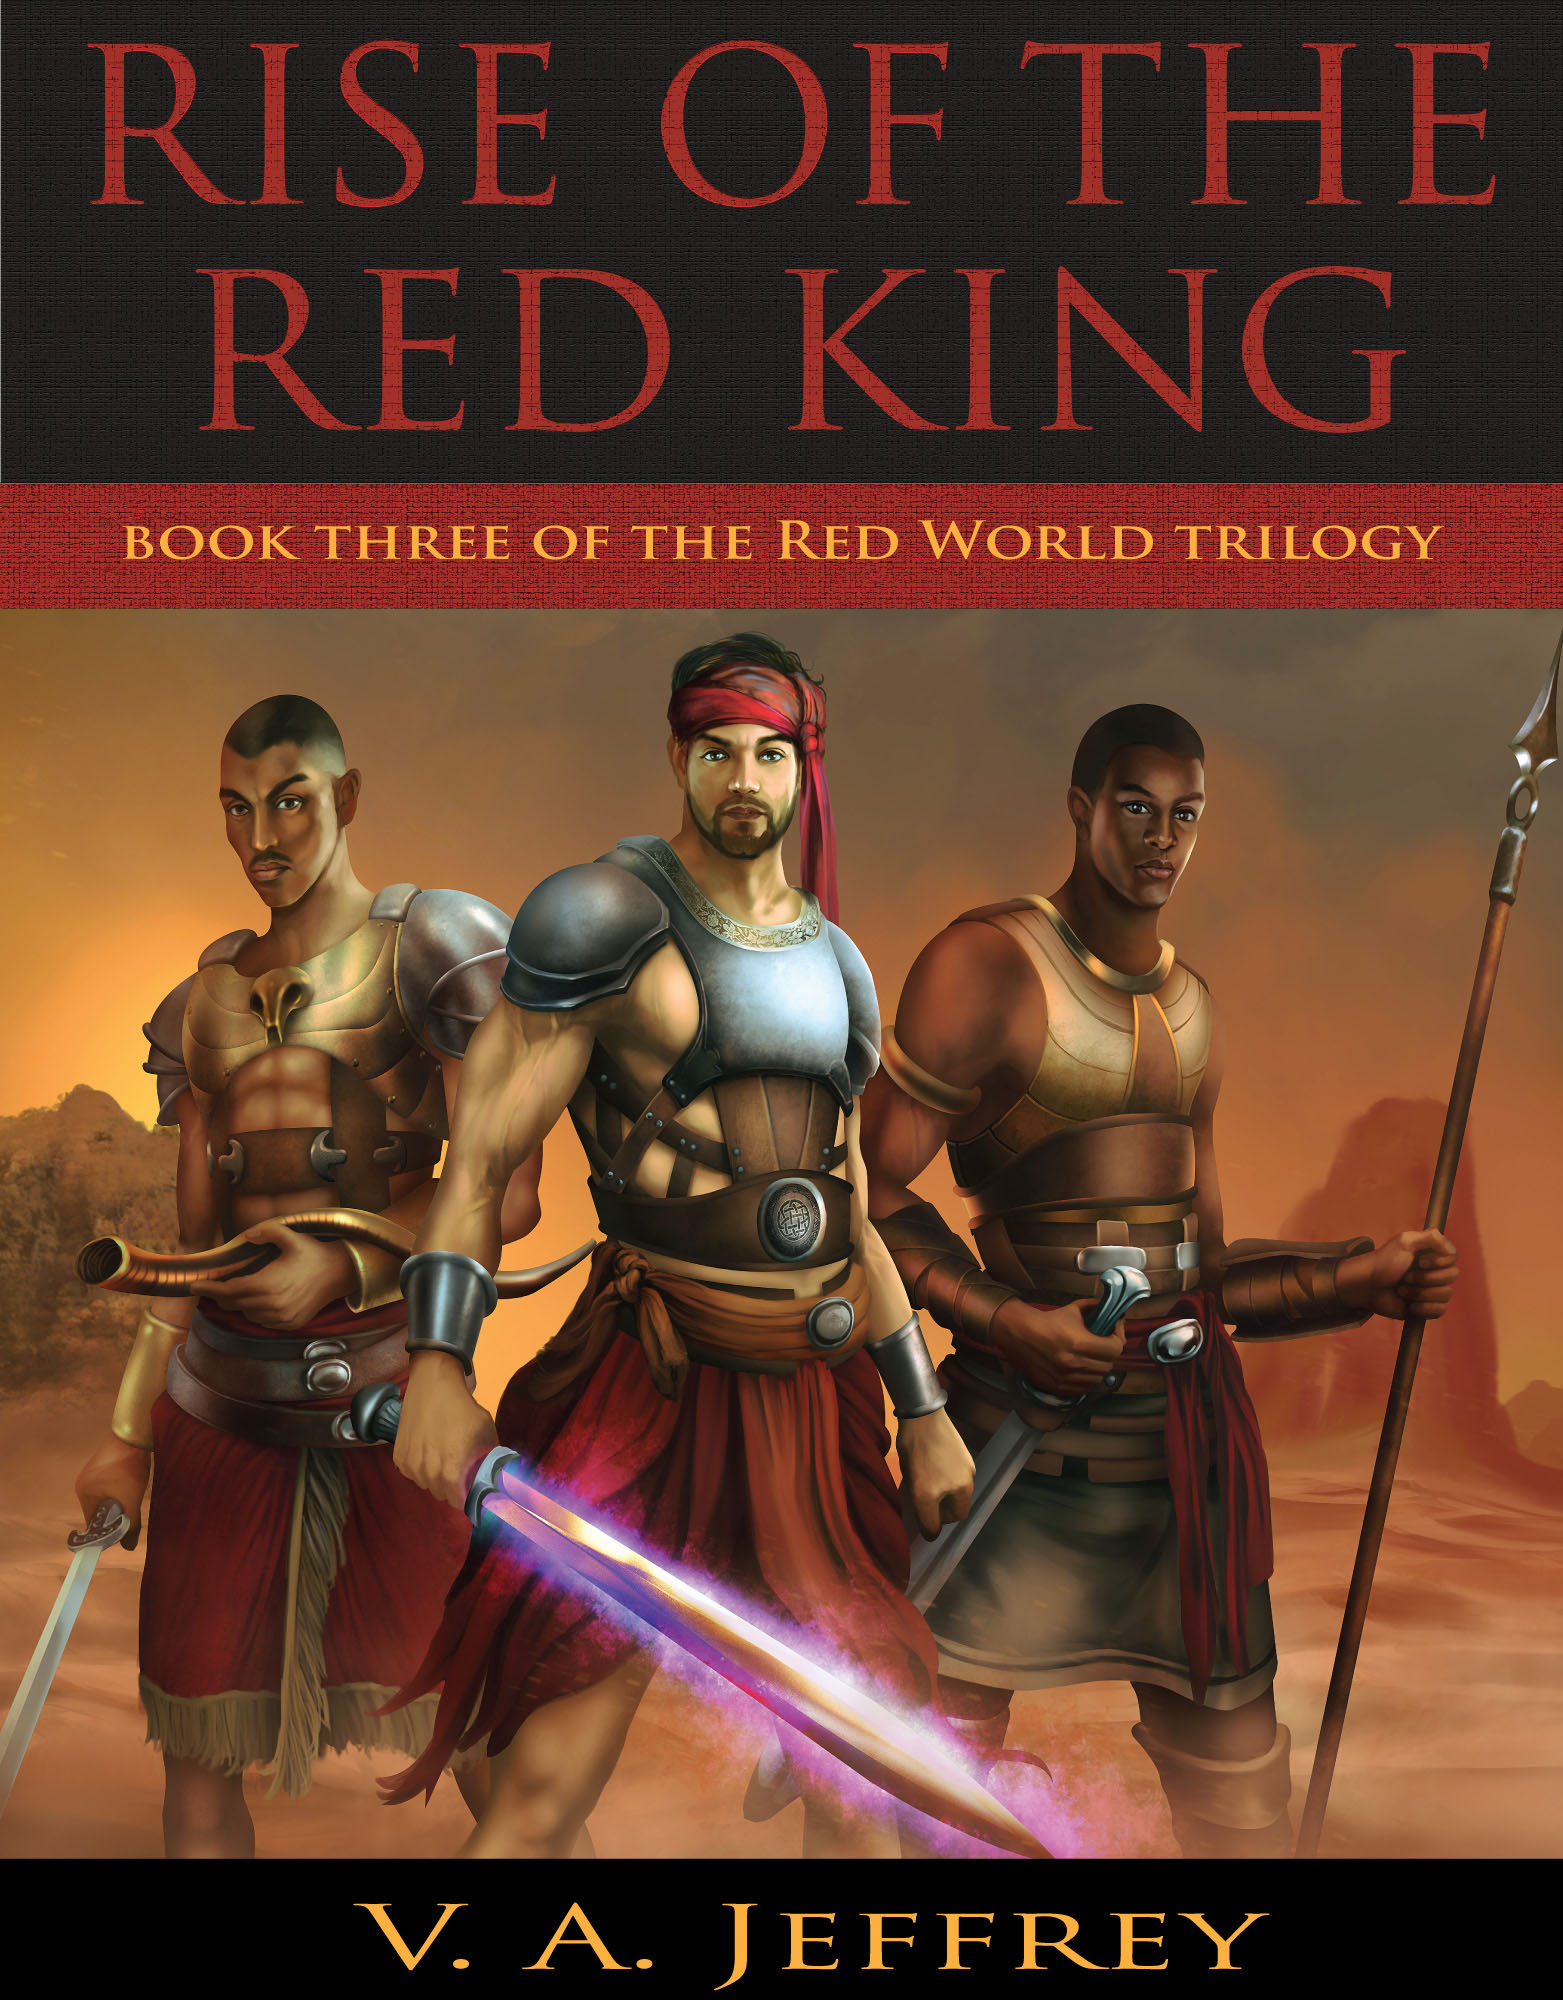 riseoftheredkingbookcover.jpg